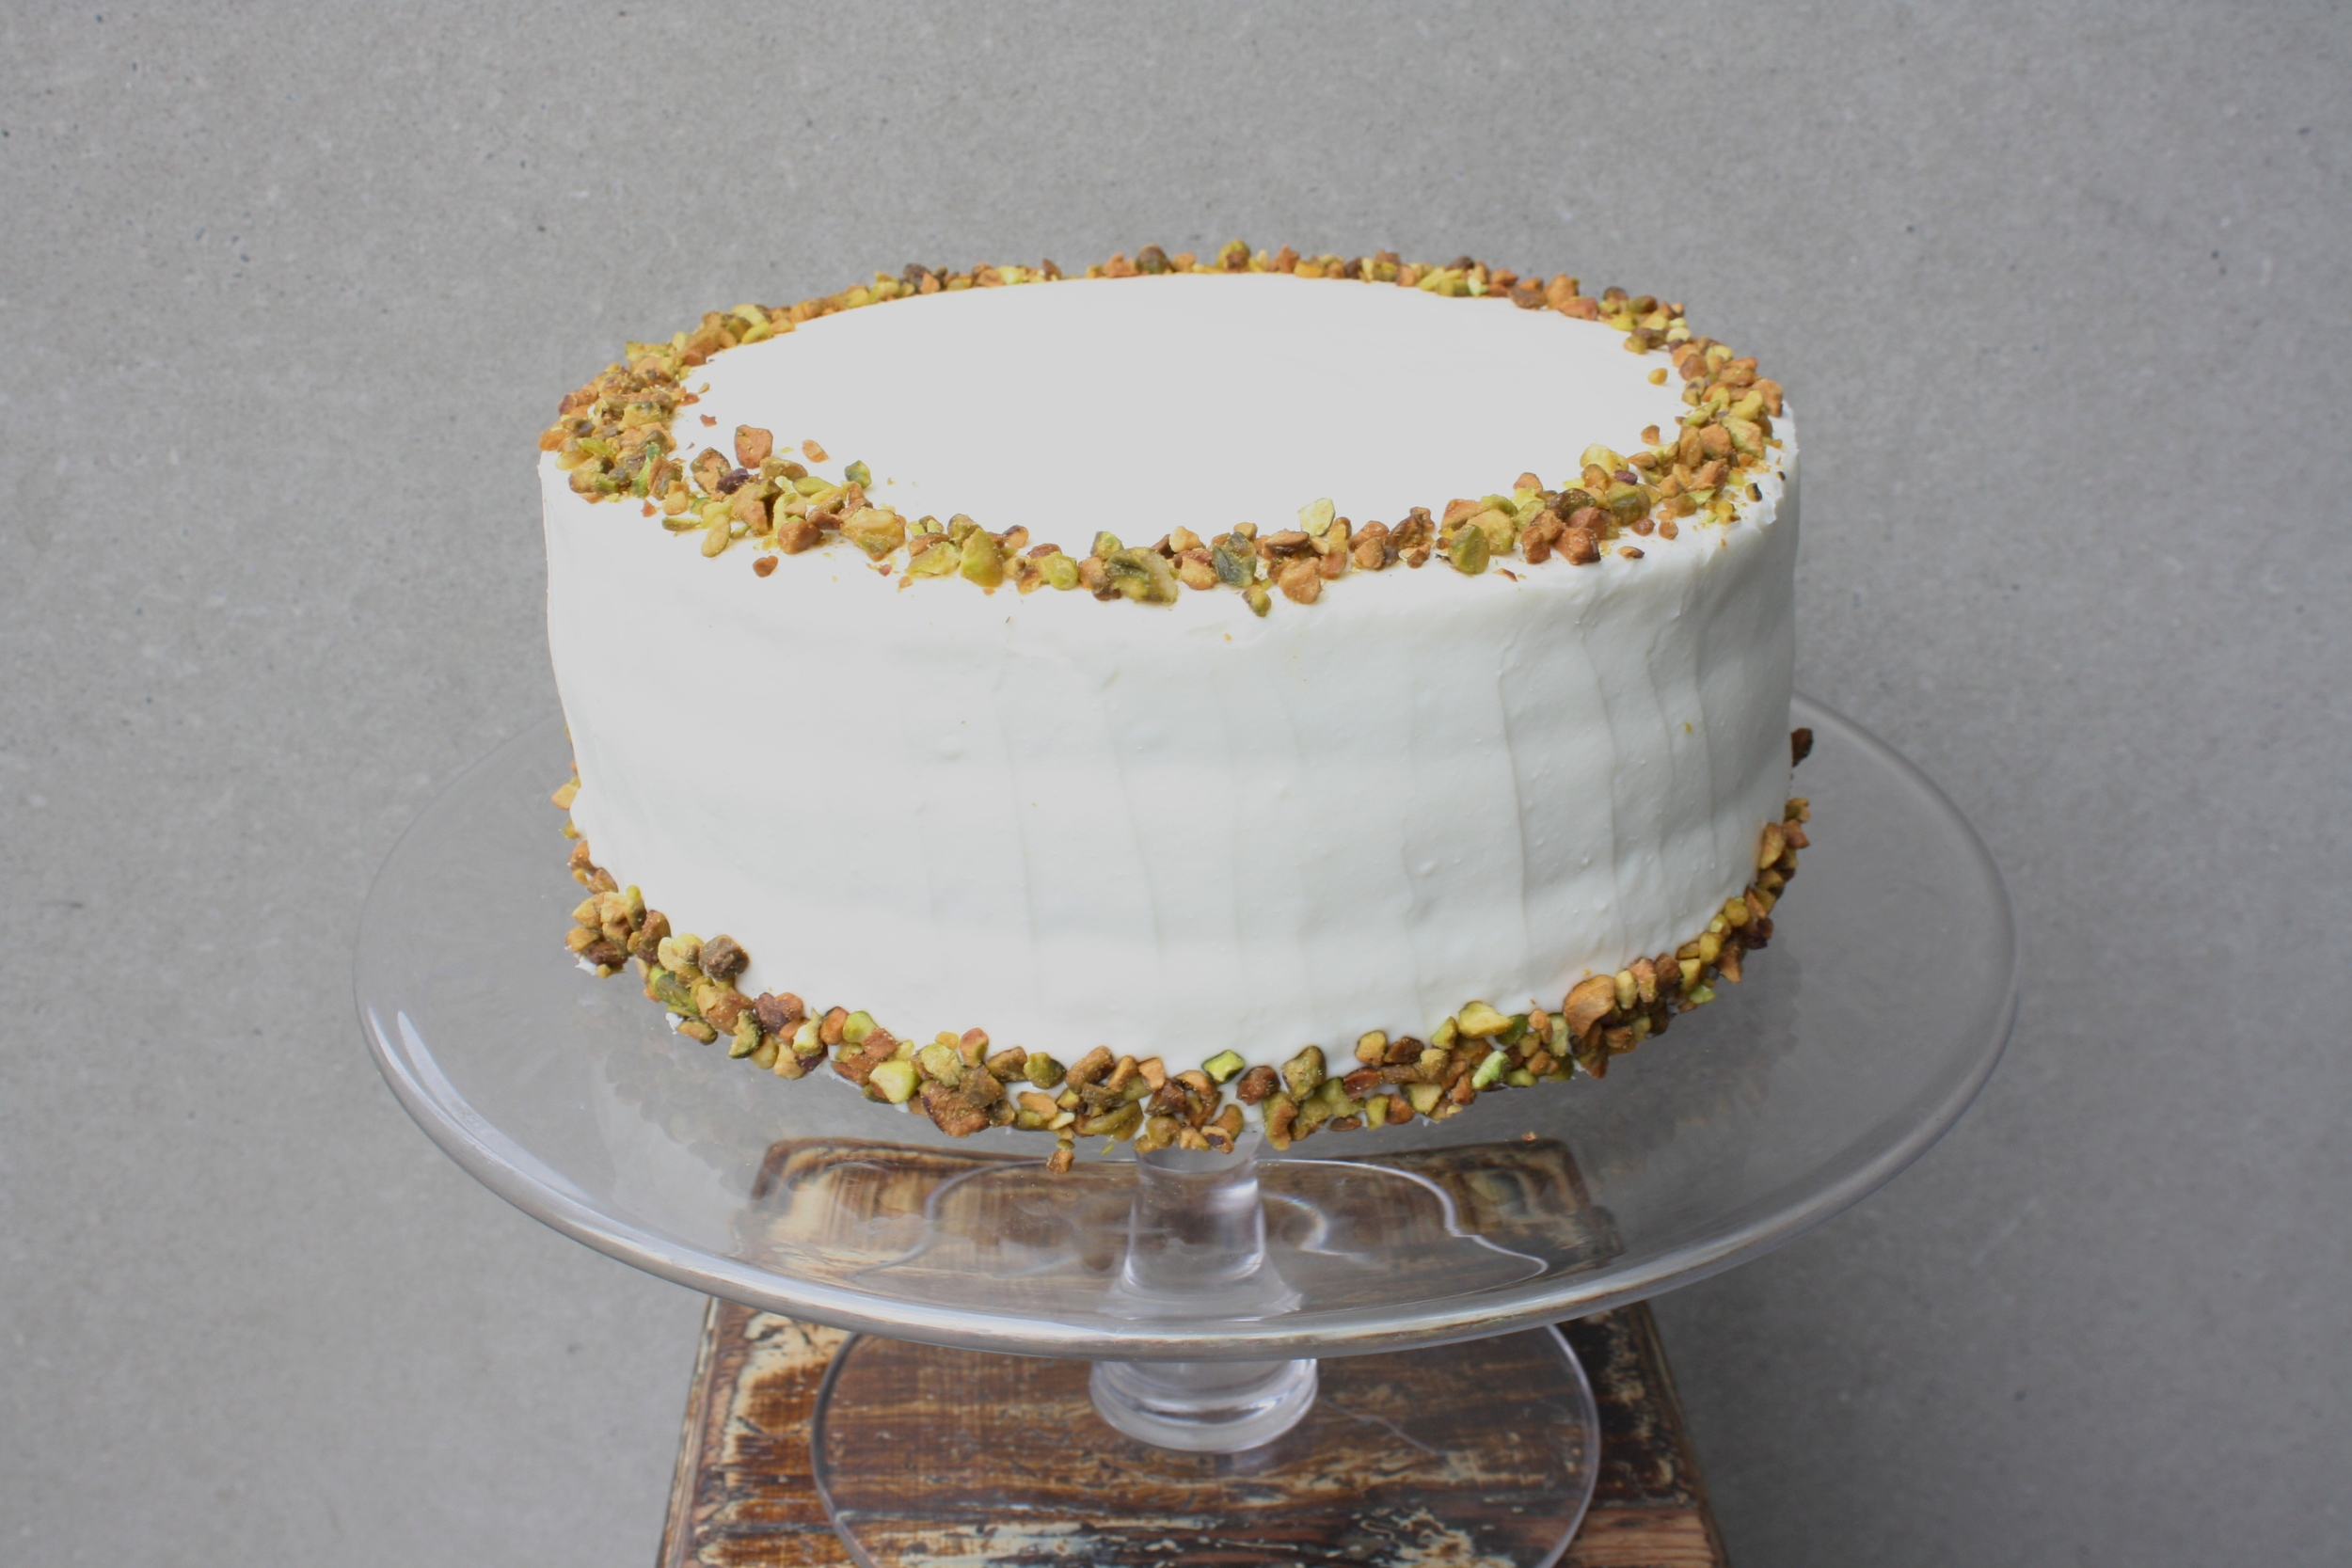 red velvet pistachio  a southern classic with a twist: our red VELVET is layered with minced pistachios and finished with a delicate mascarpone icing